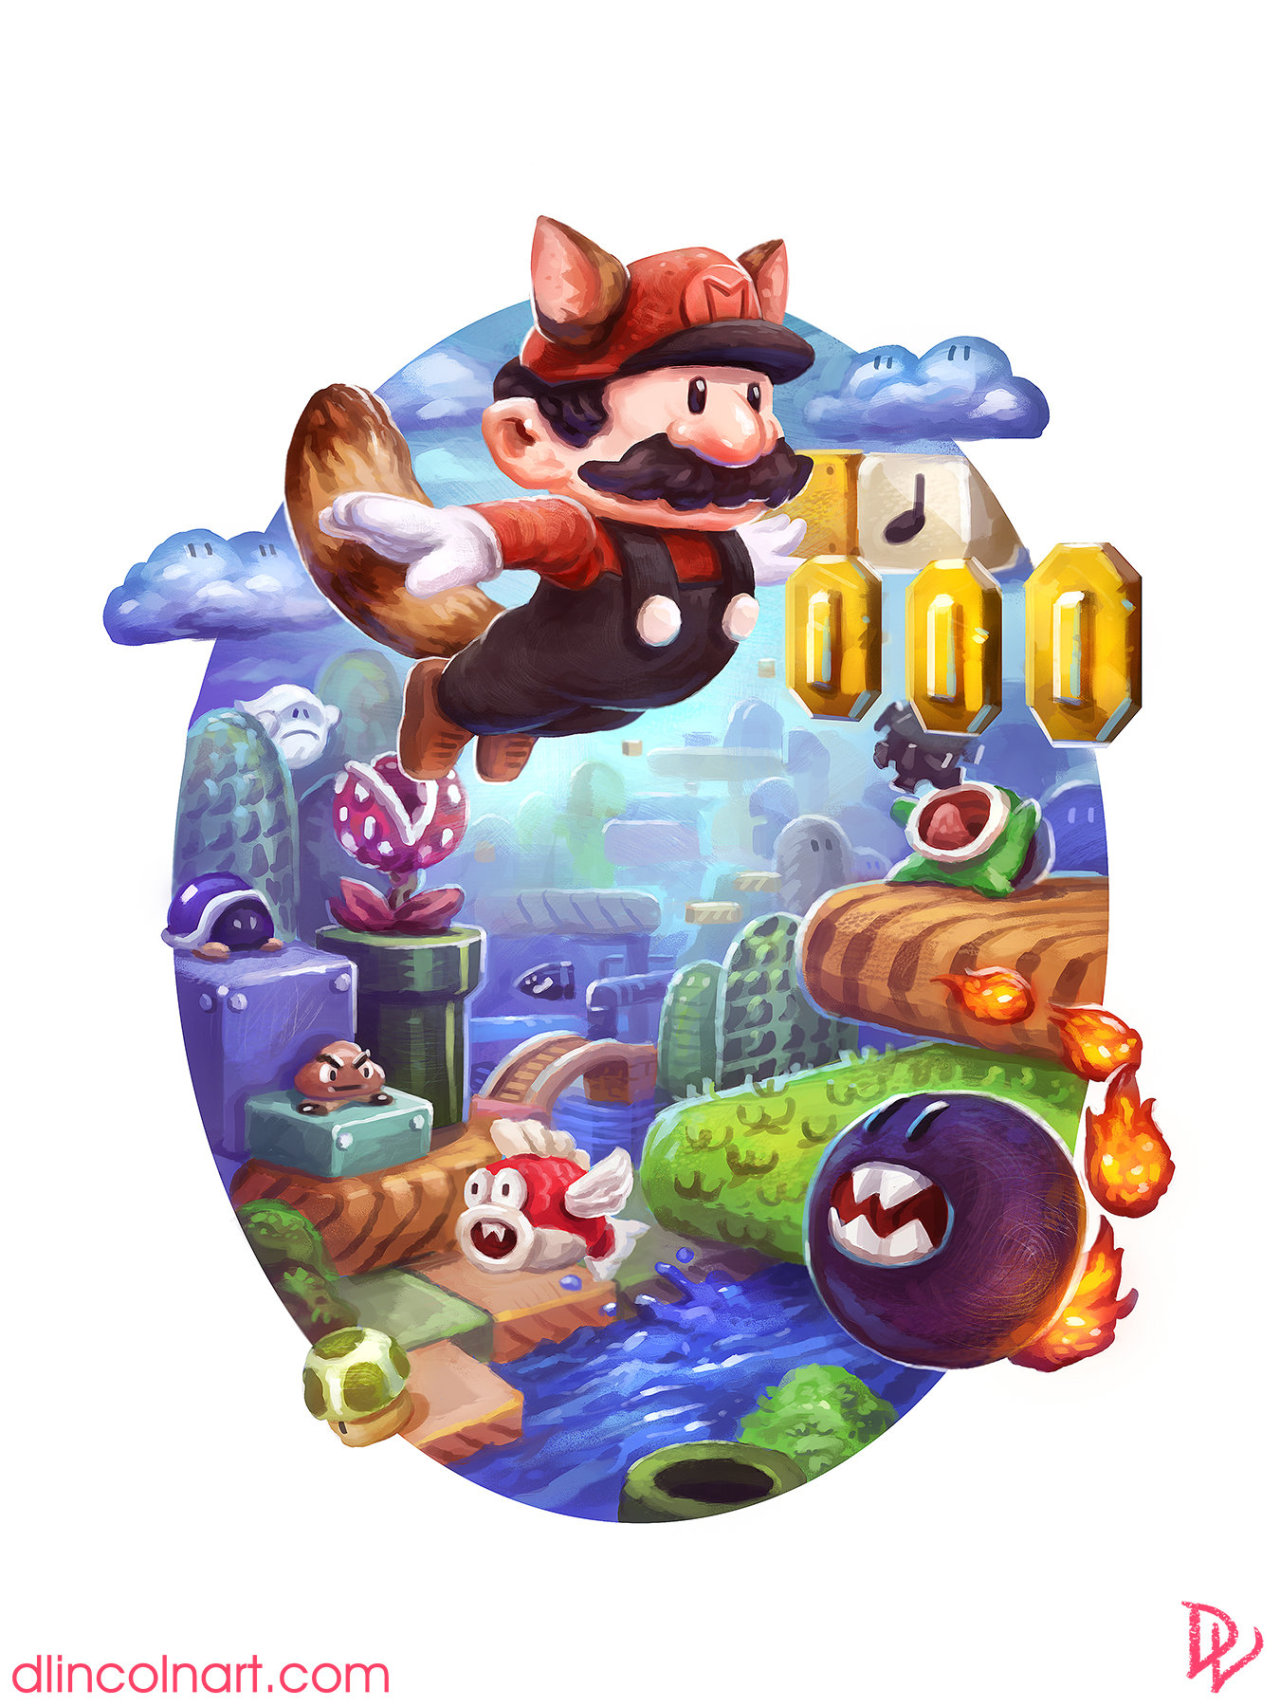 Super Mario Bros. 3 by Dustin Lincoln